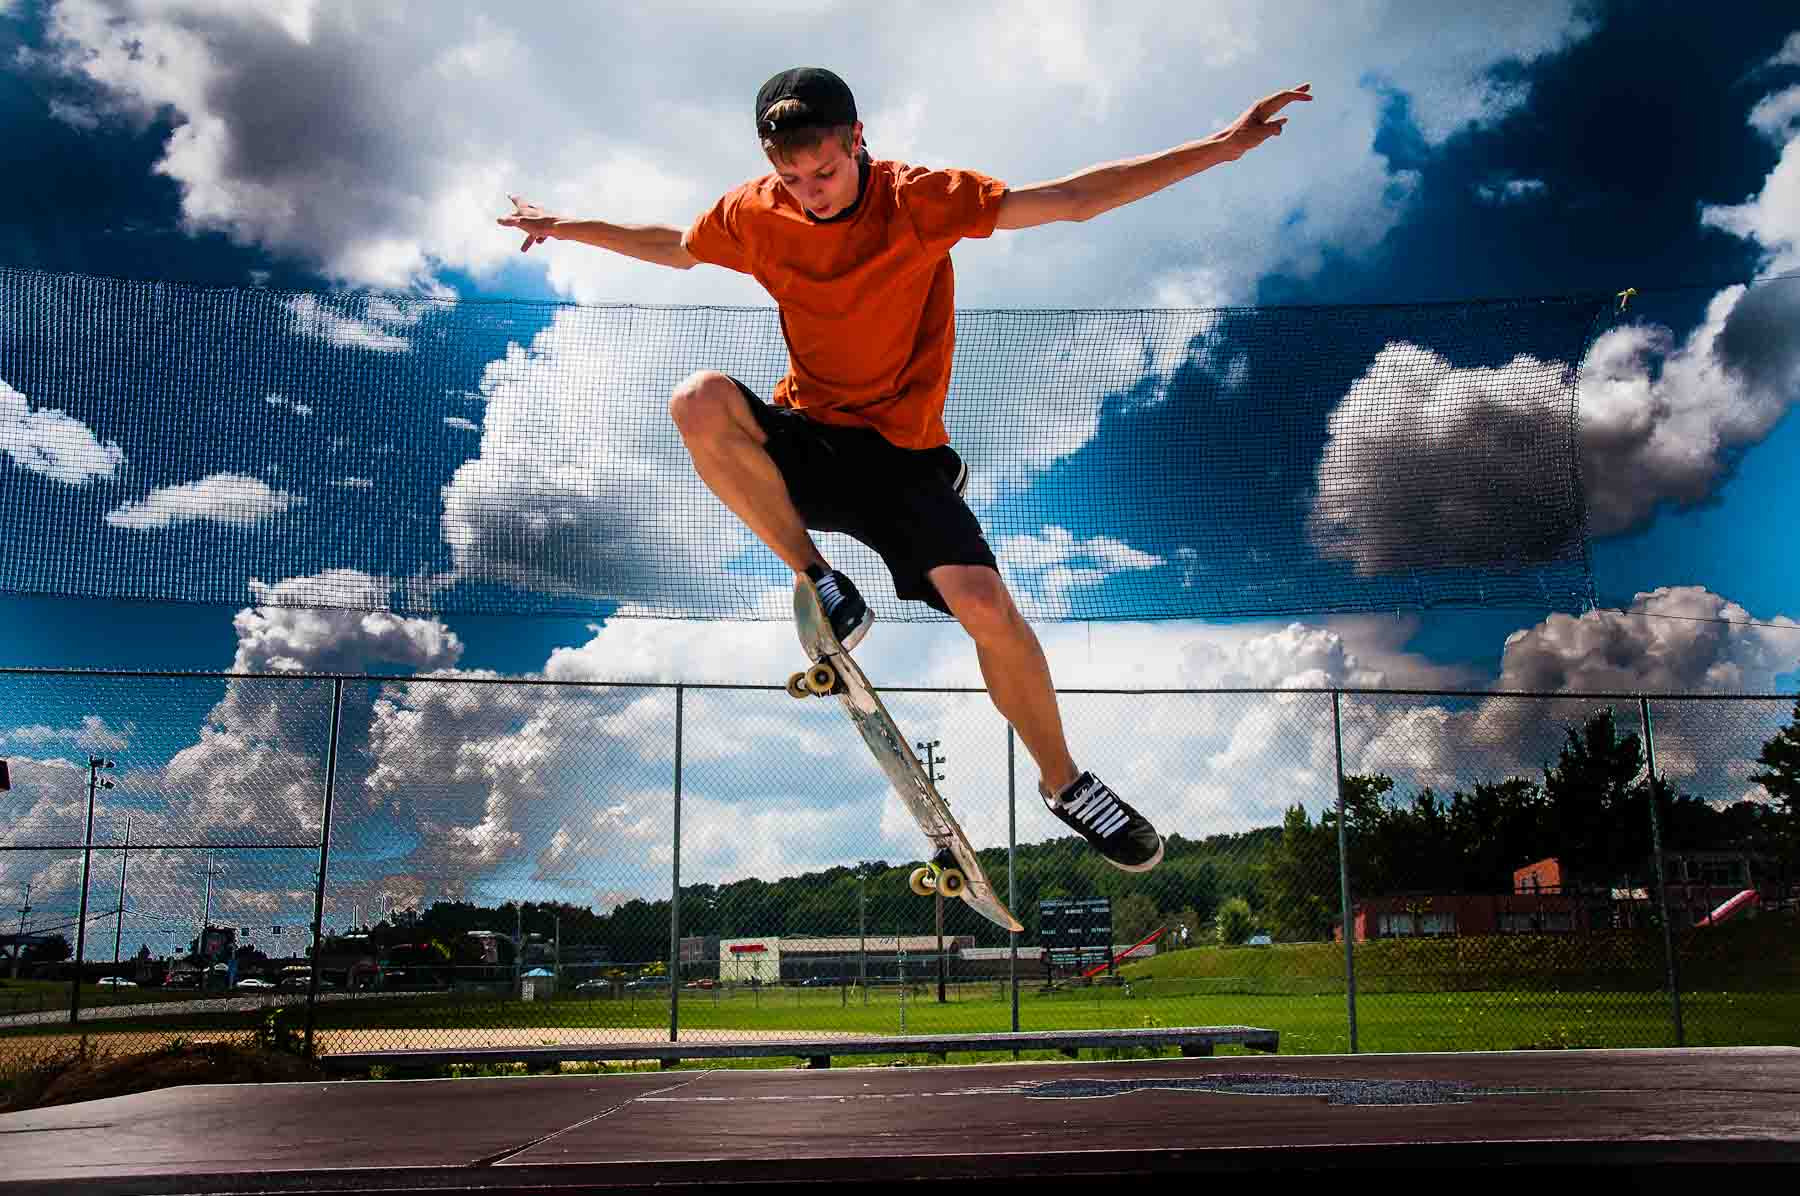 Photograph skateboard by Andre Garant on 500px